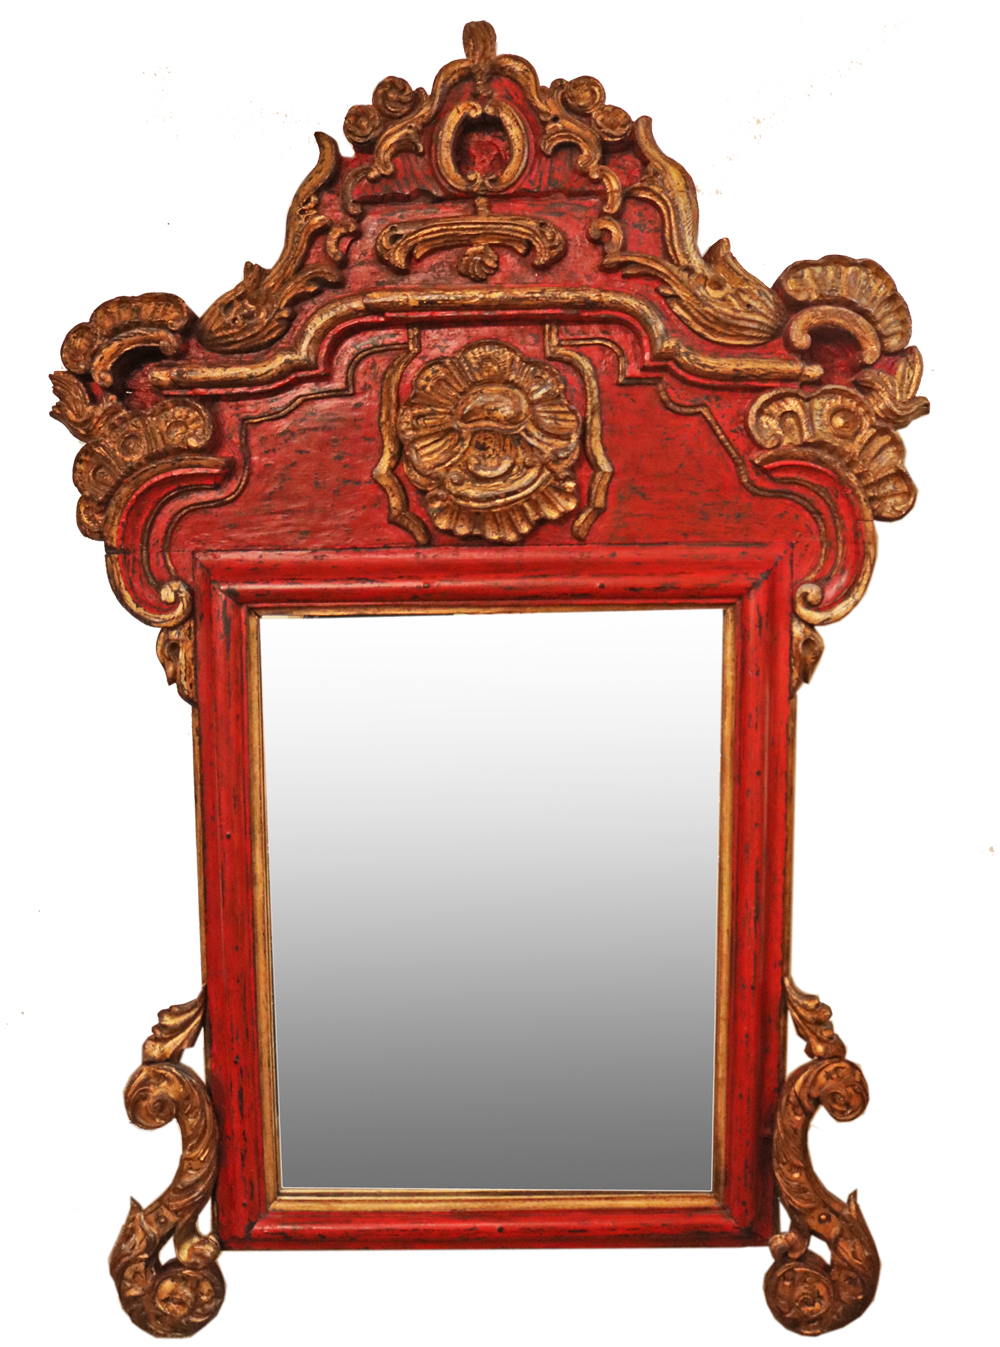 A Rare Portuguese Red Lacquer and Giltwood Mirror No. 4751